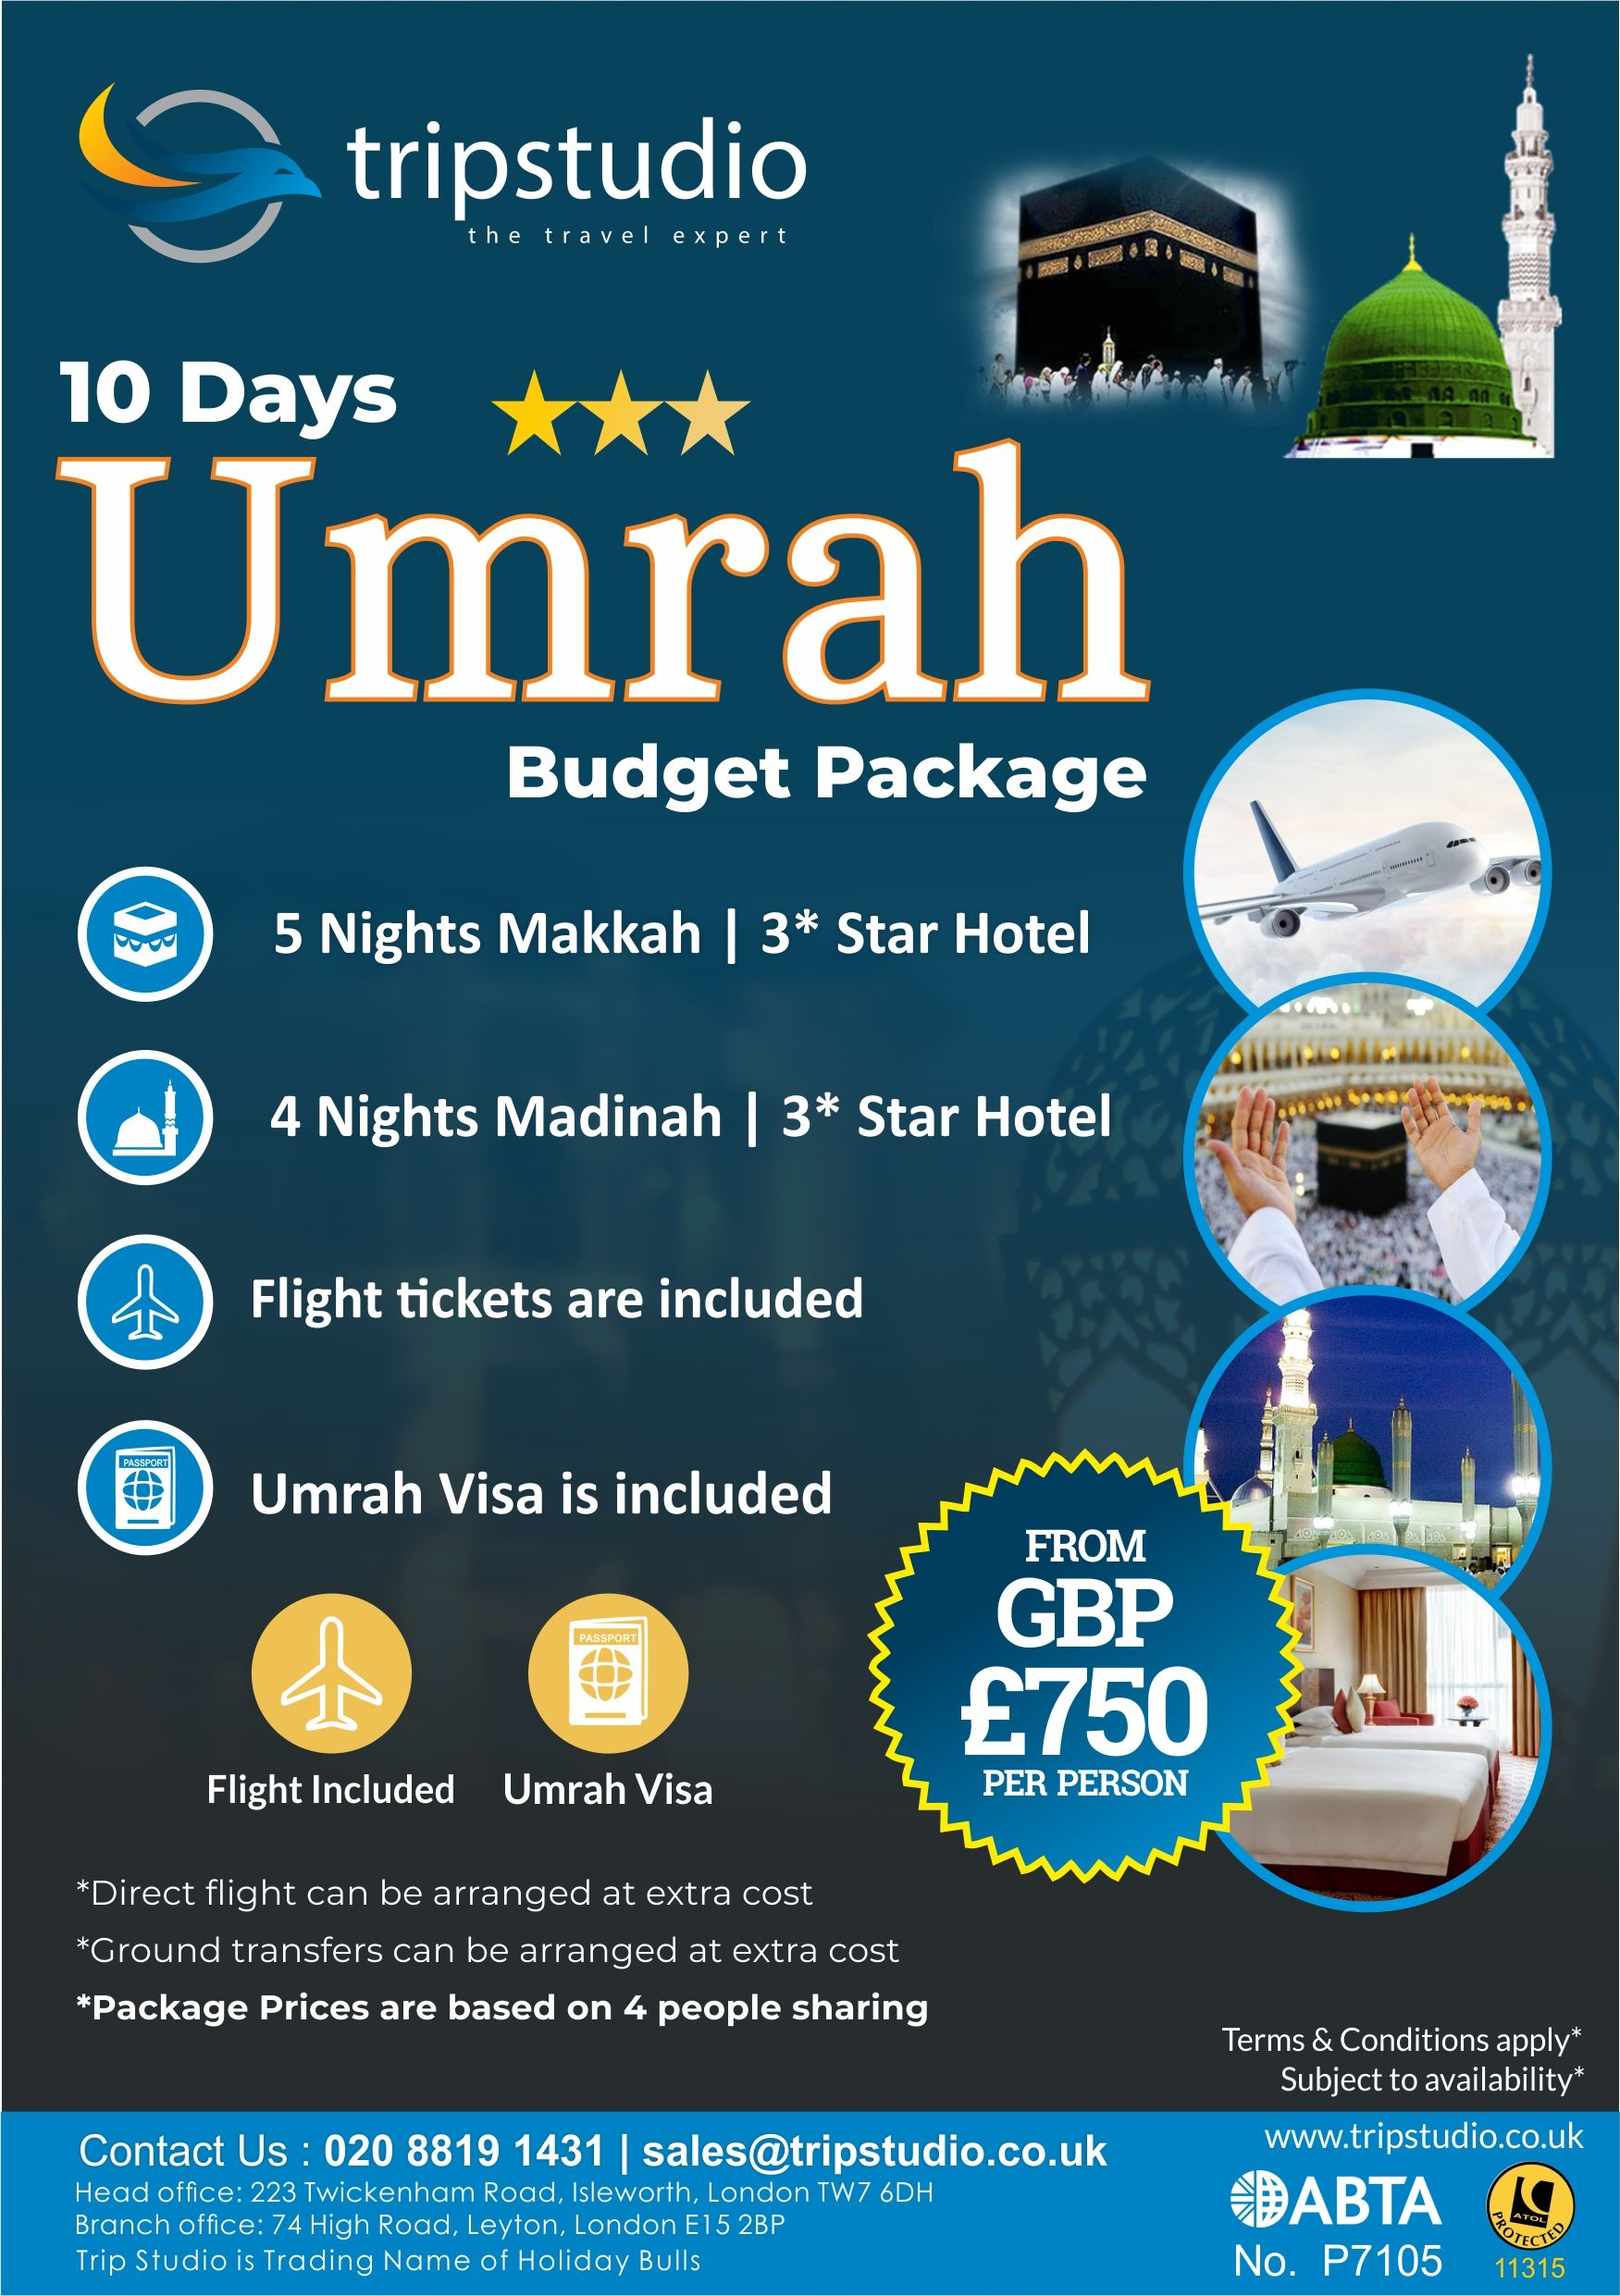 Pin by prasetya on hajj and umrah in 2019 | Best flight